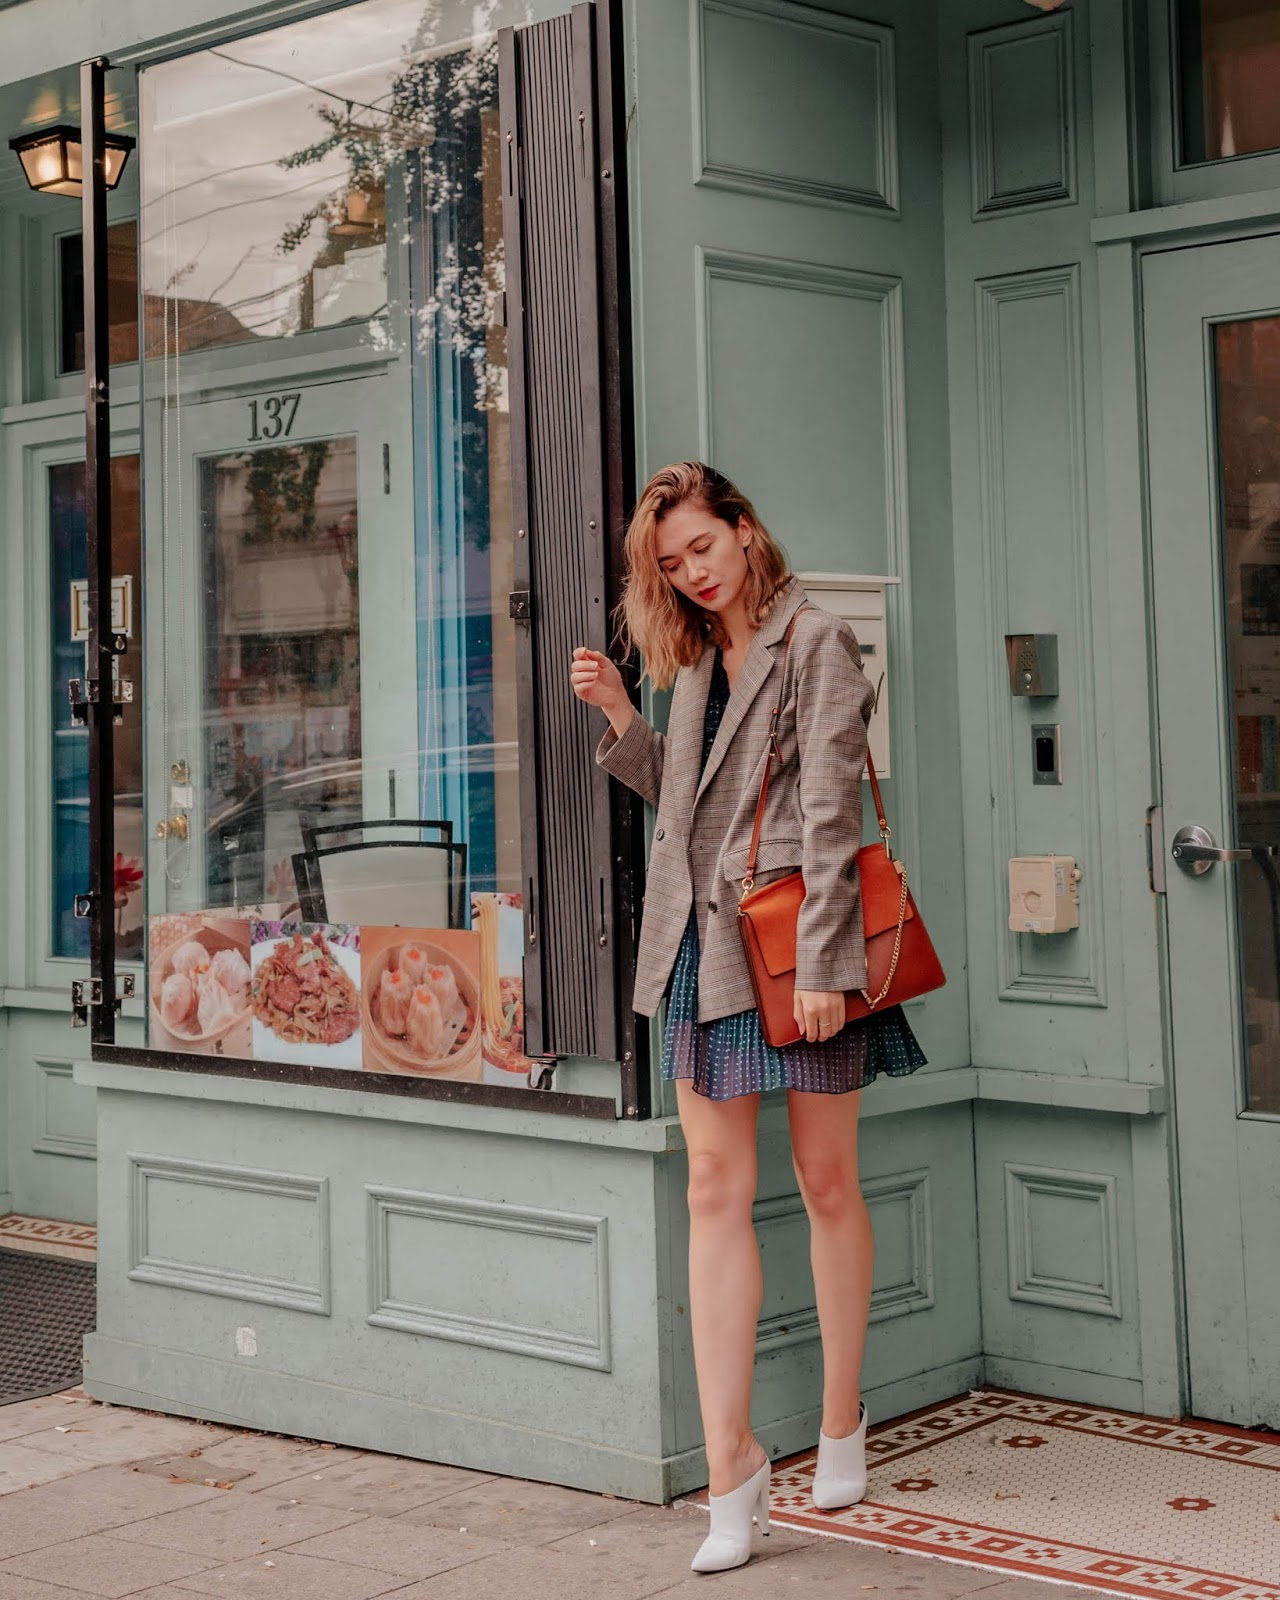 Camel tones, vancouver blogger, fall trends, fall 2018 trends, camel coat, cozy outfit for winter, fall outfit, fall style, canadian style, canadian fashion blogger, plaid blazer, fall dresses, chloe faye, marc fisher shoes,